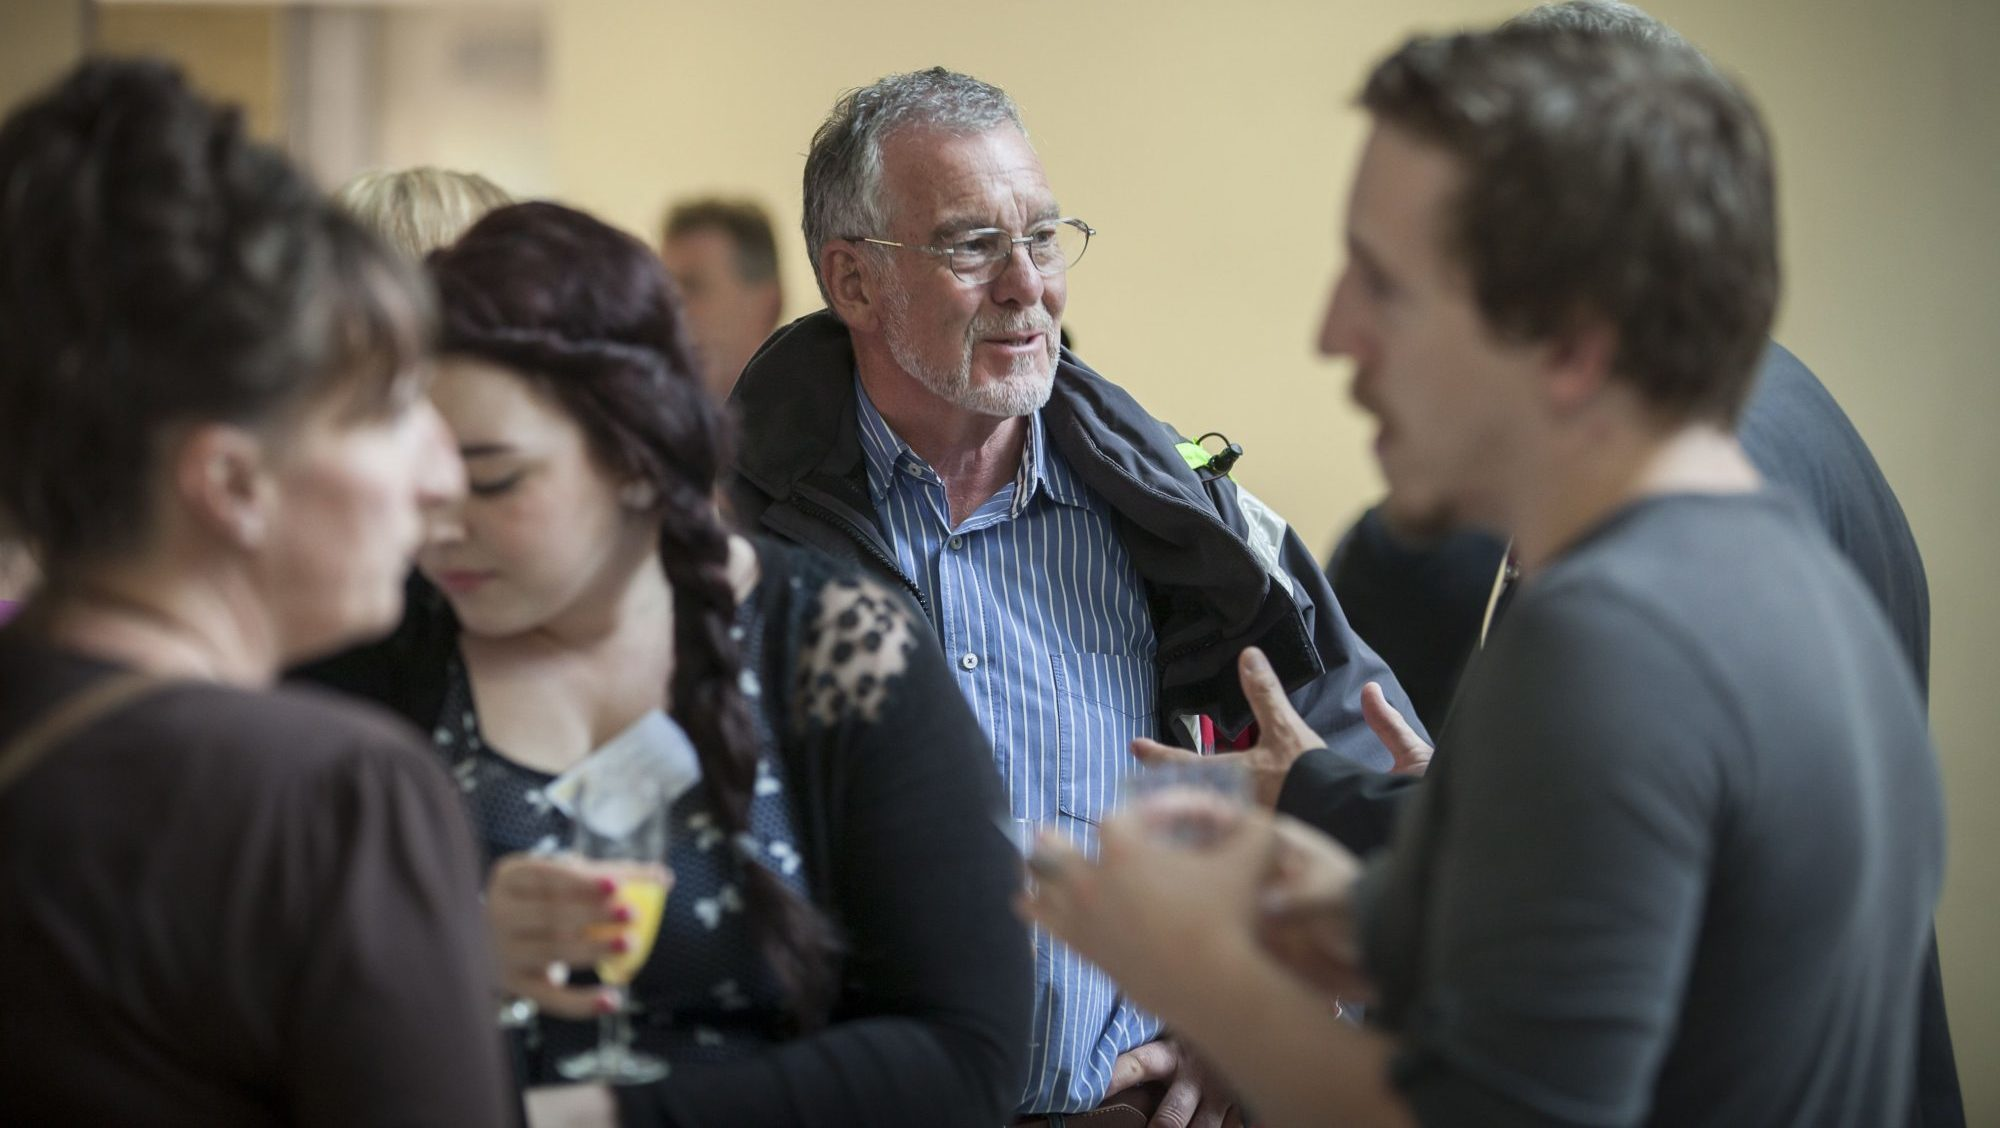 Networking event at Plymouth University